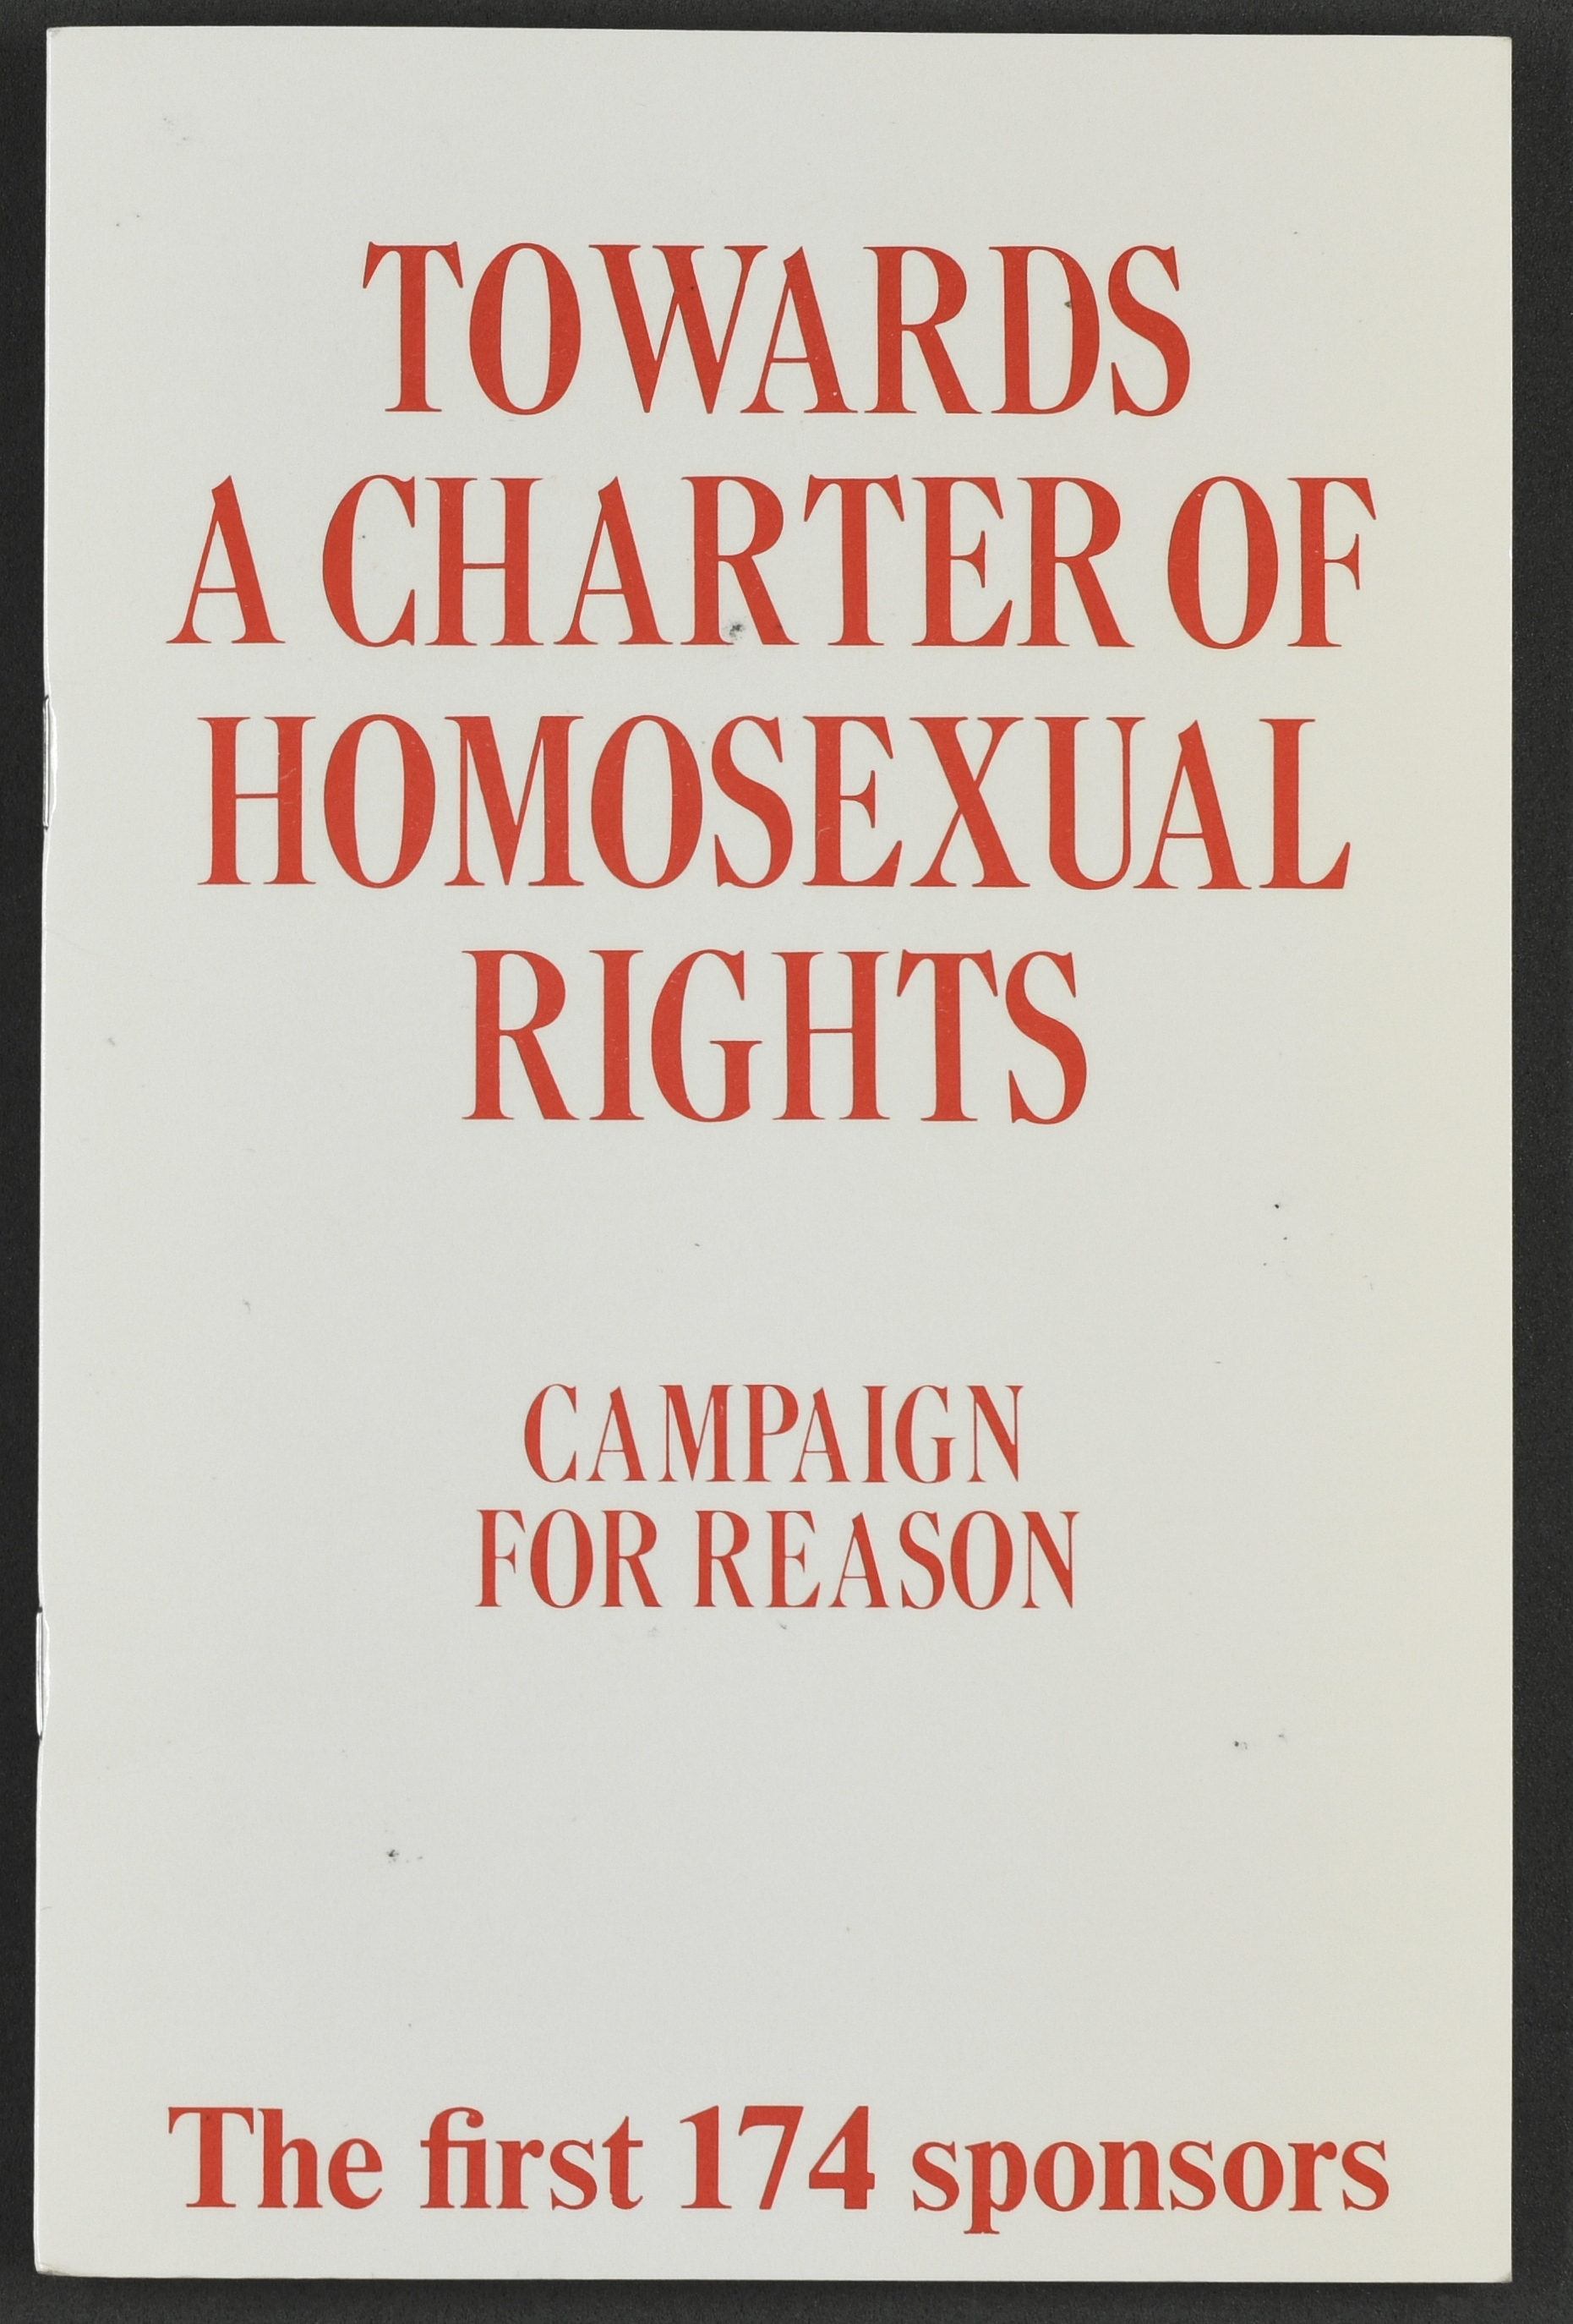 'Towards a Charter of Homosexual Rights: Campaign for Reason' pamphlet